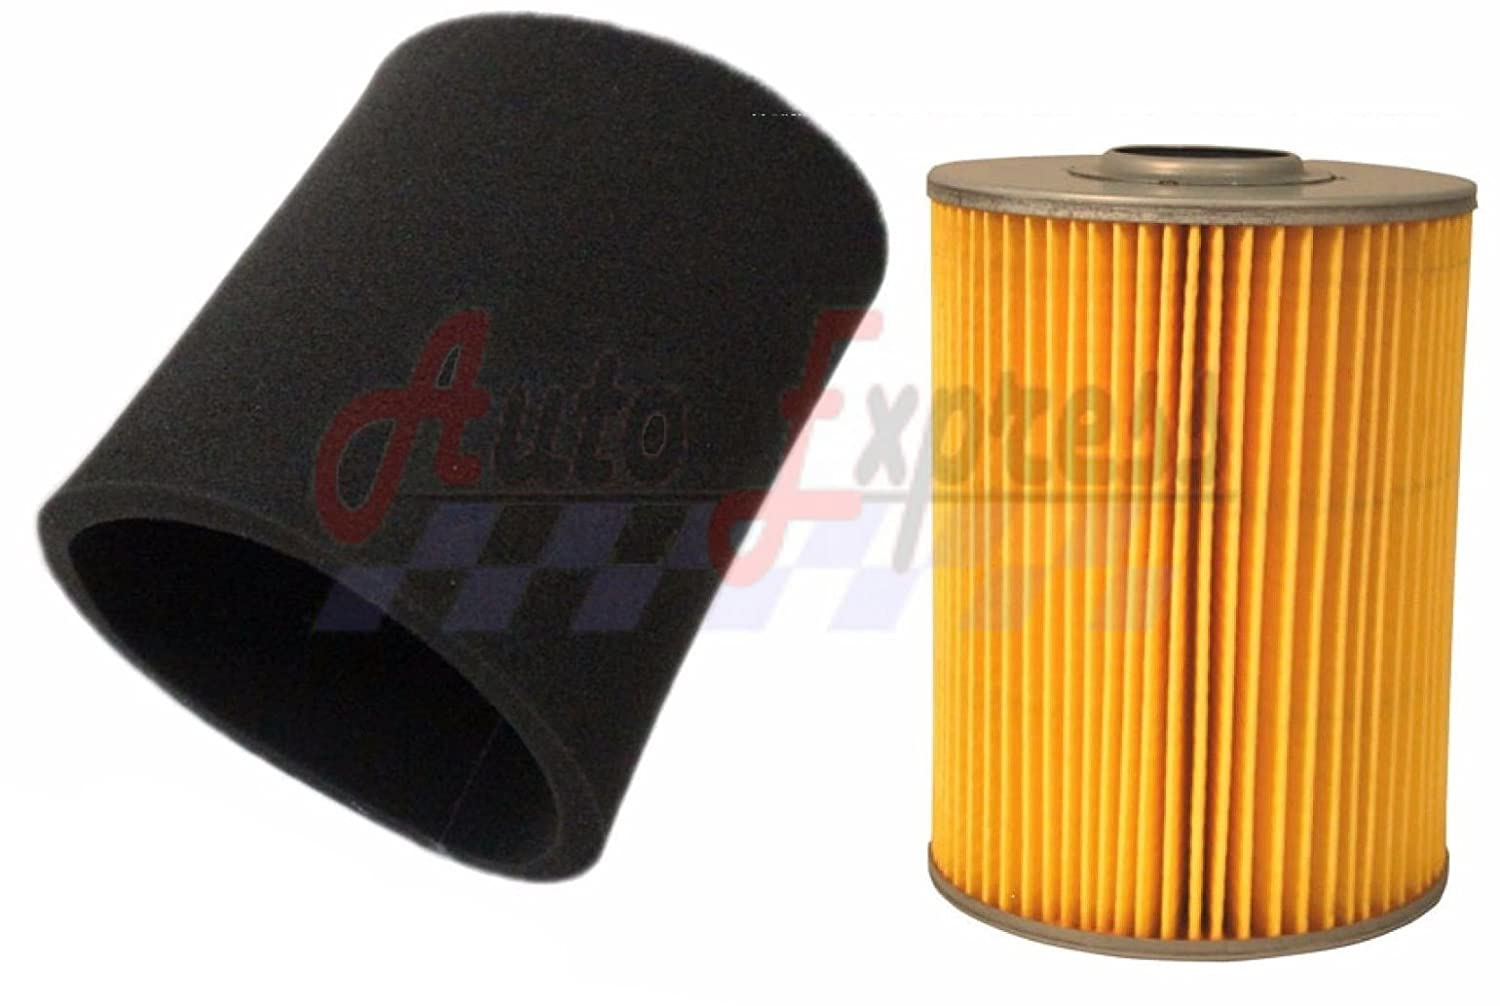 Amazon.com : Air Filter for Yamaha Golf Cart Replaces OE J38-14450-00,  EPIGC139 : Sports & Outdoors